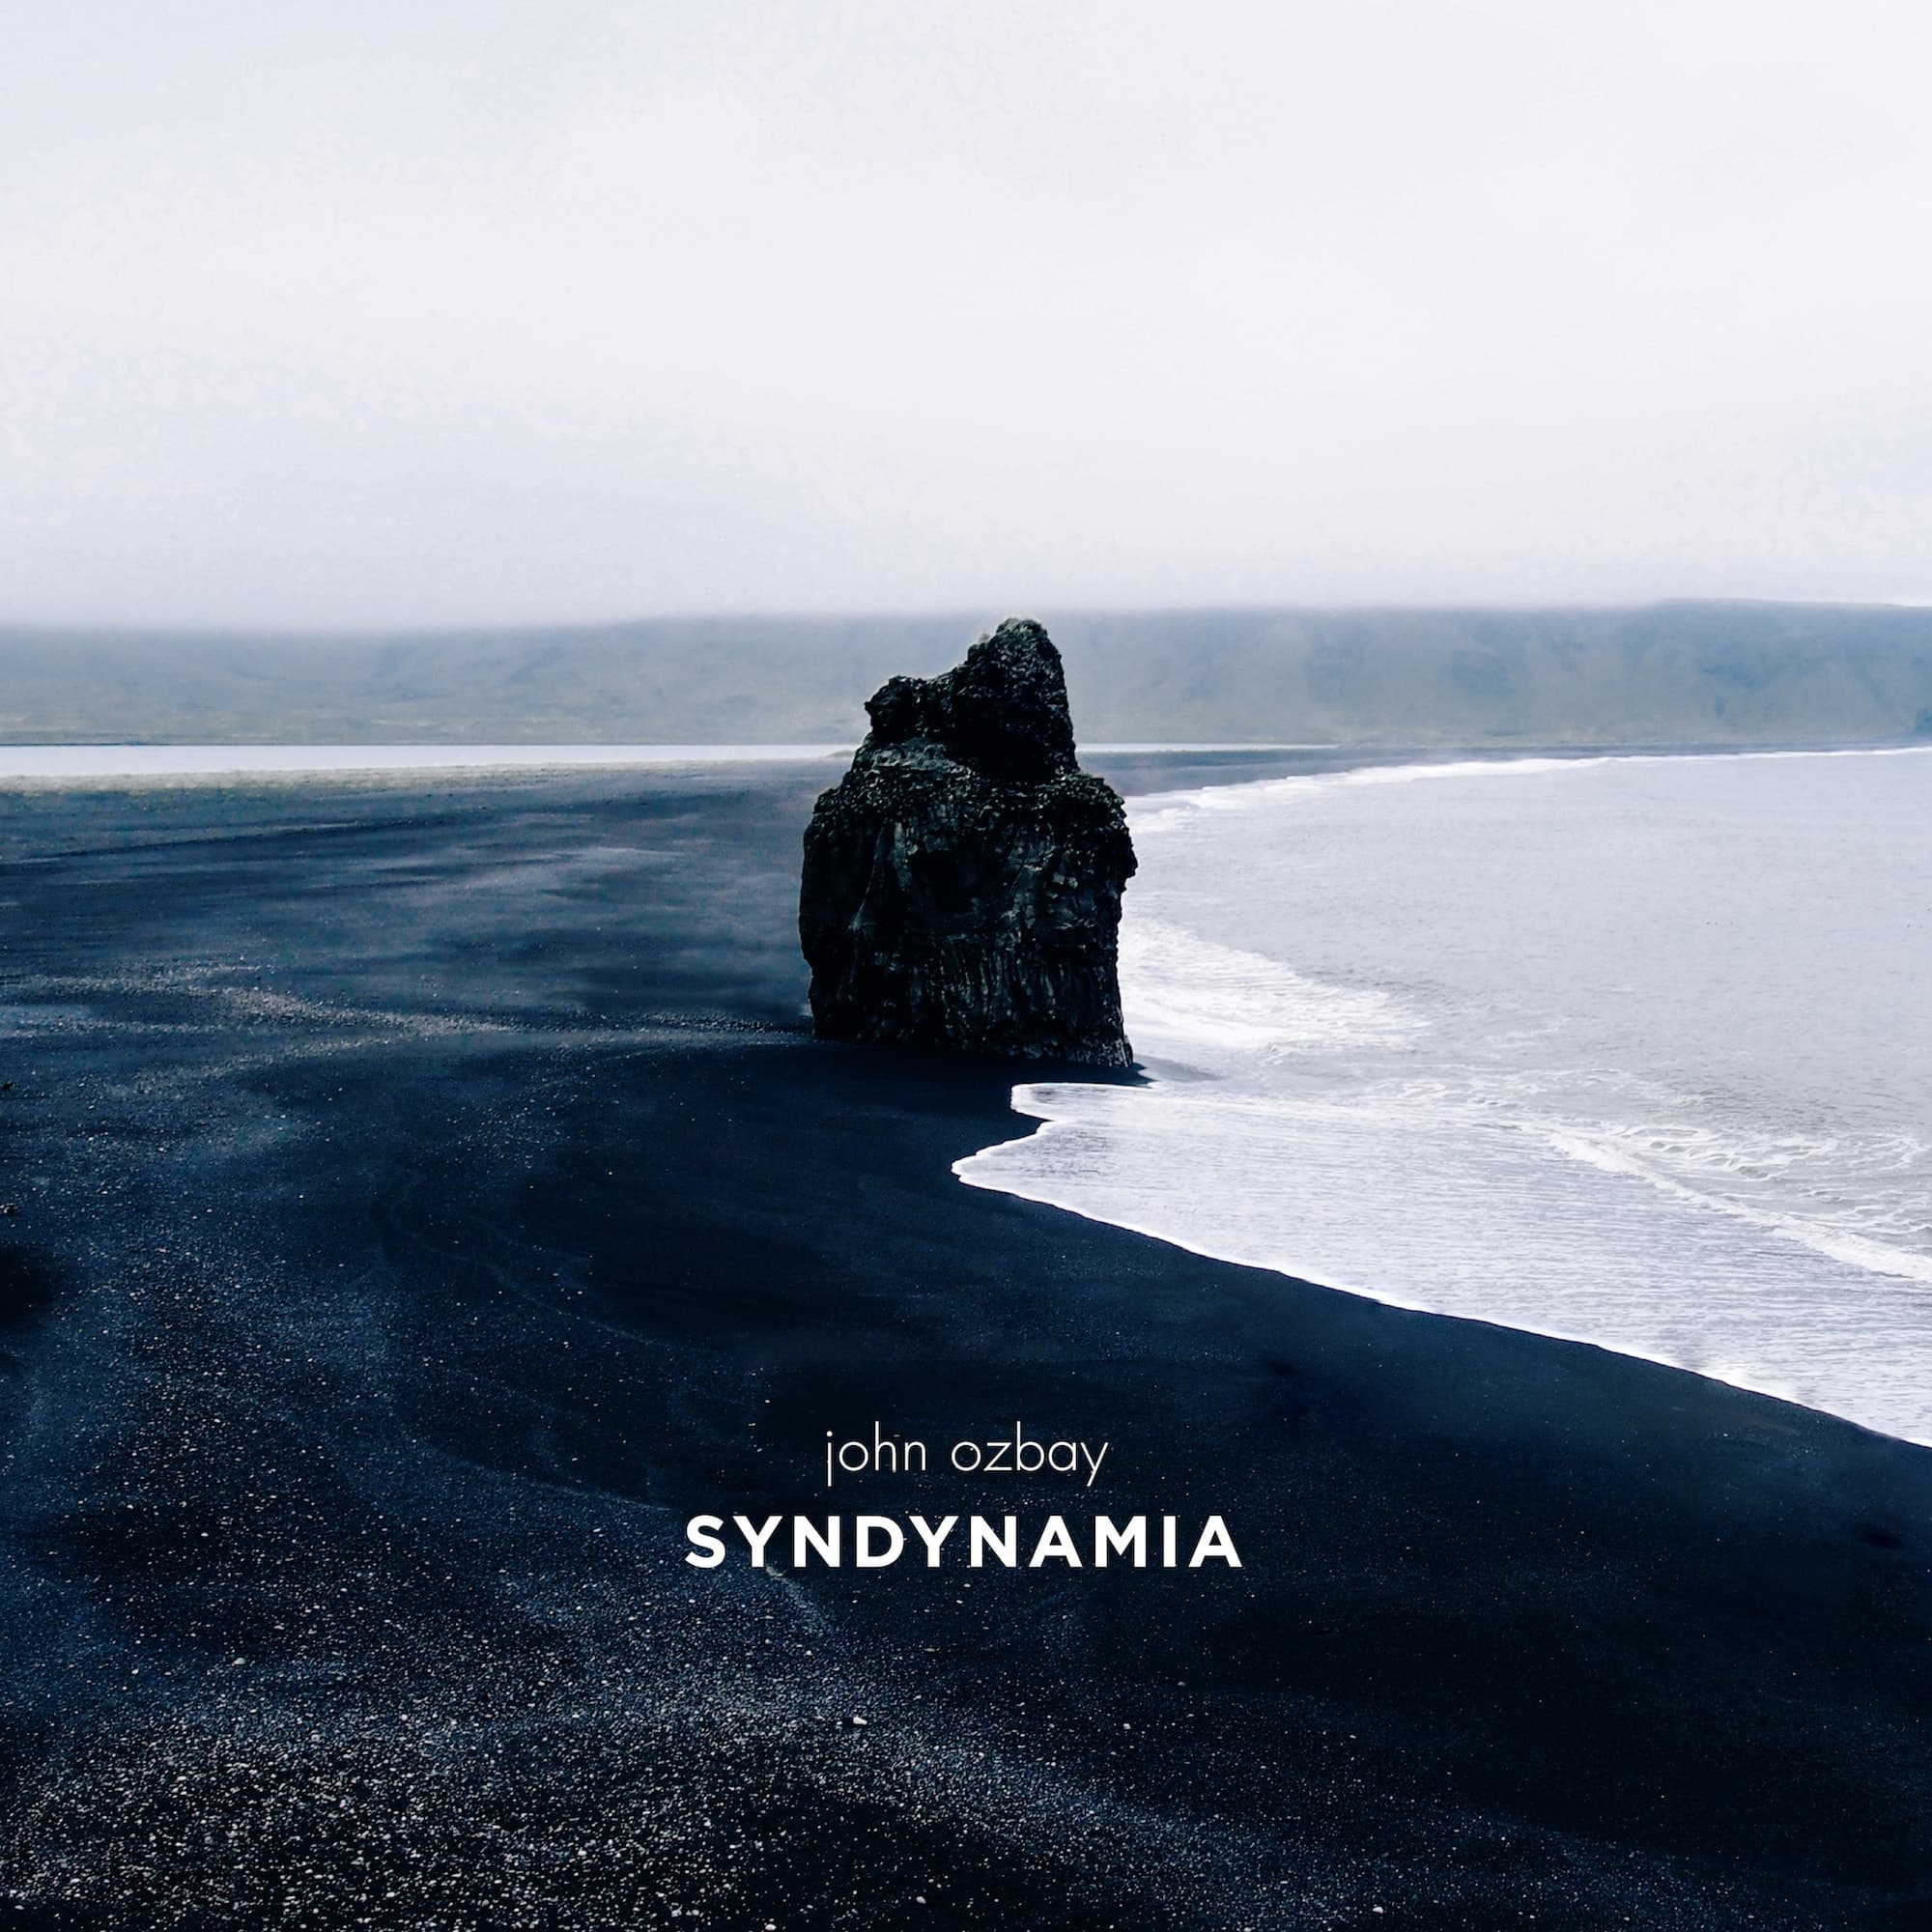 Syndynamia Artwork